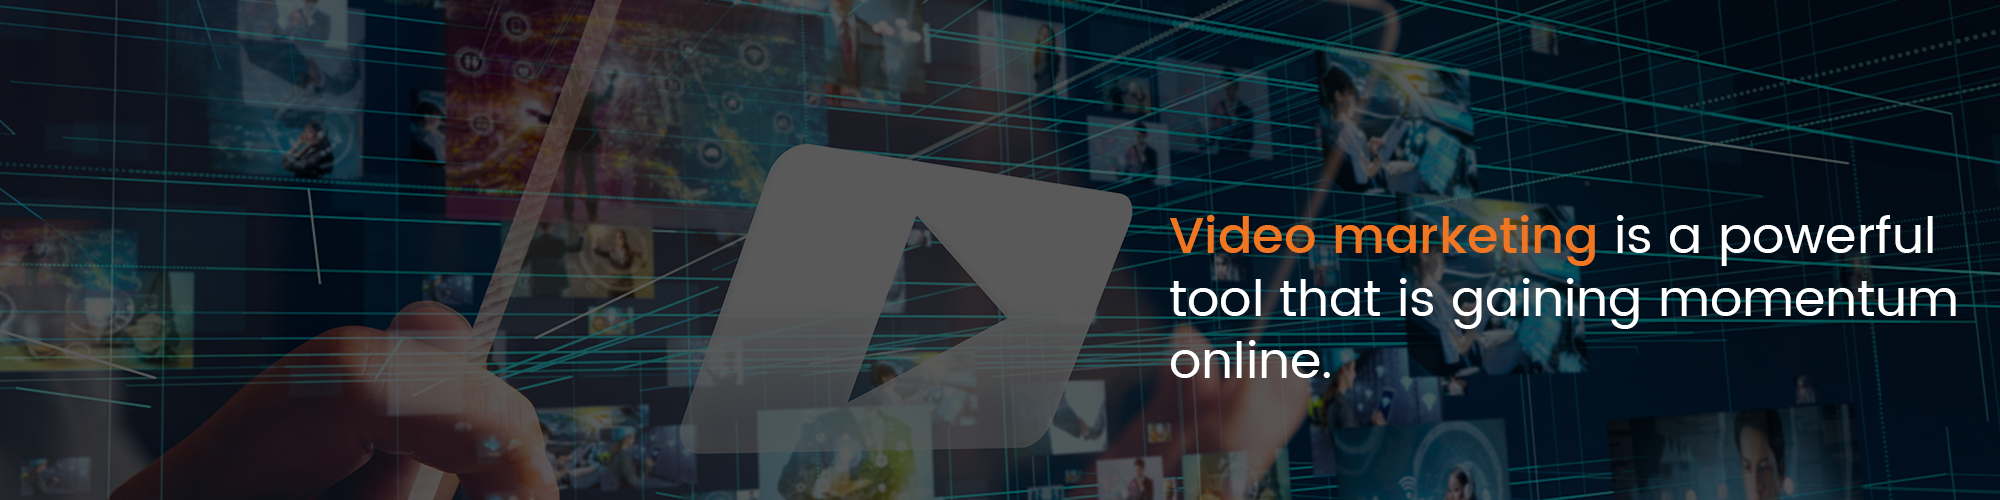 Video marketing is a powerful tool that is gaining momentum online.